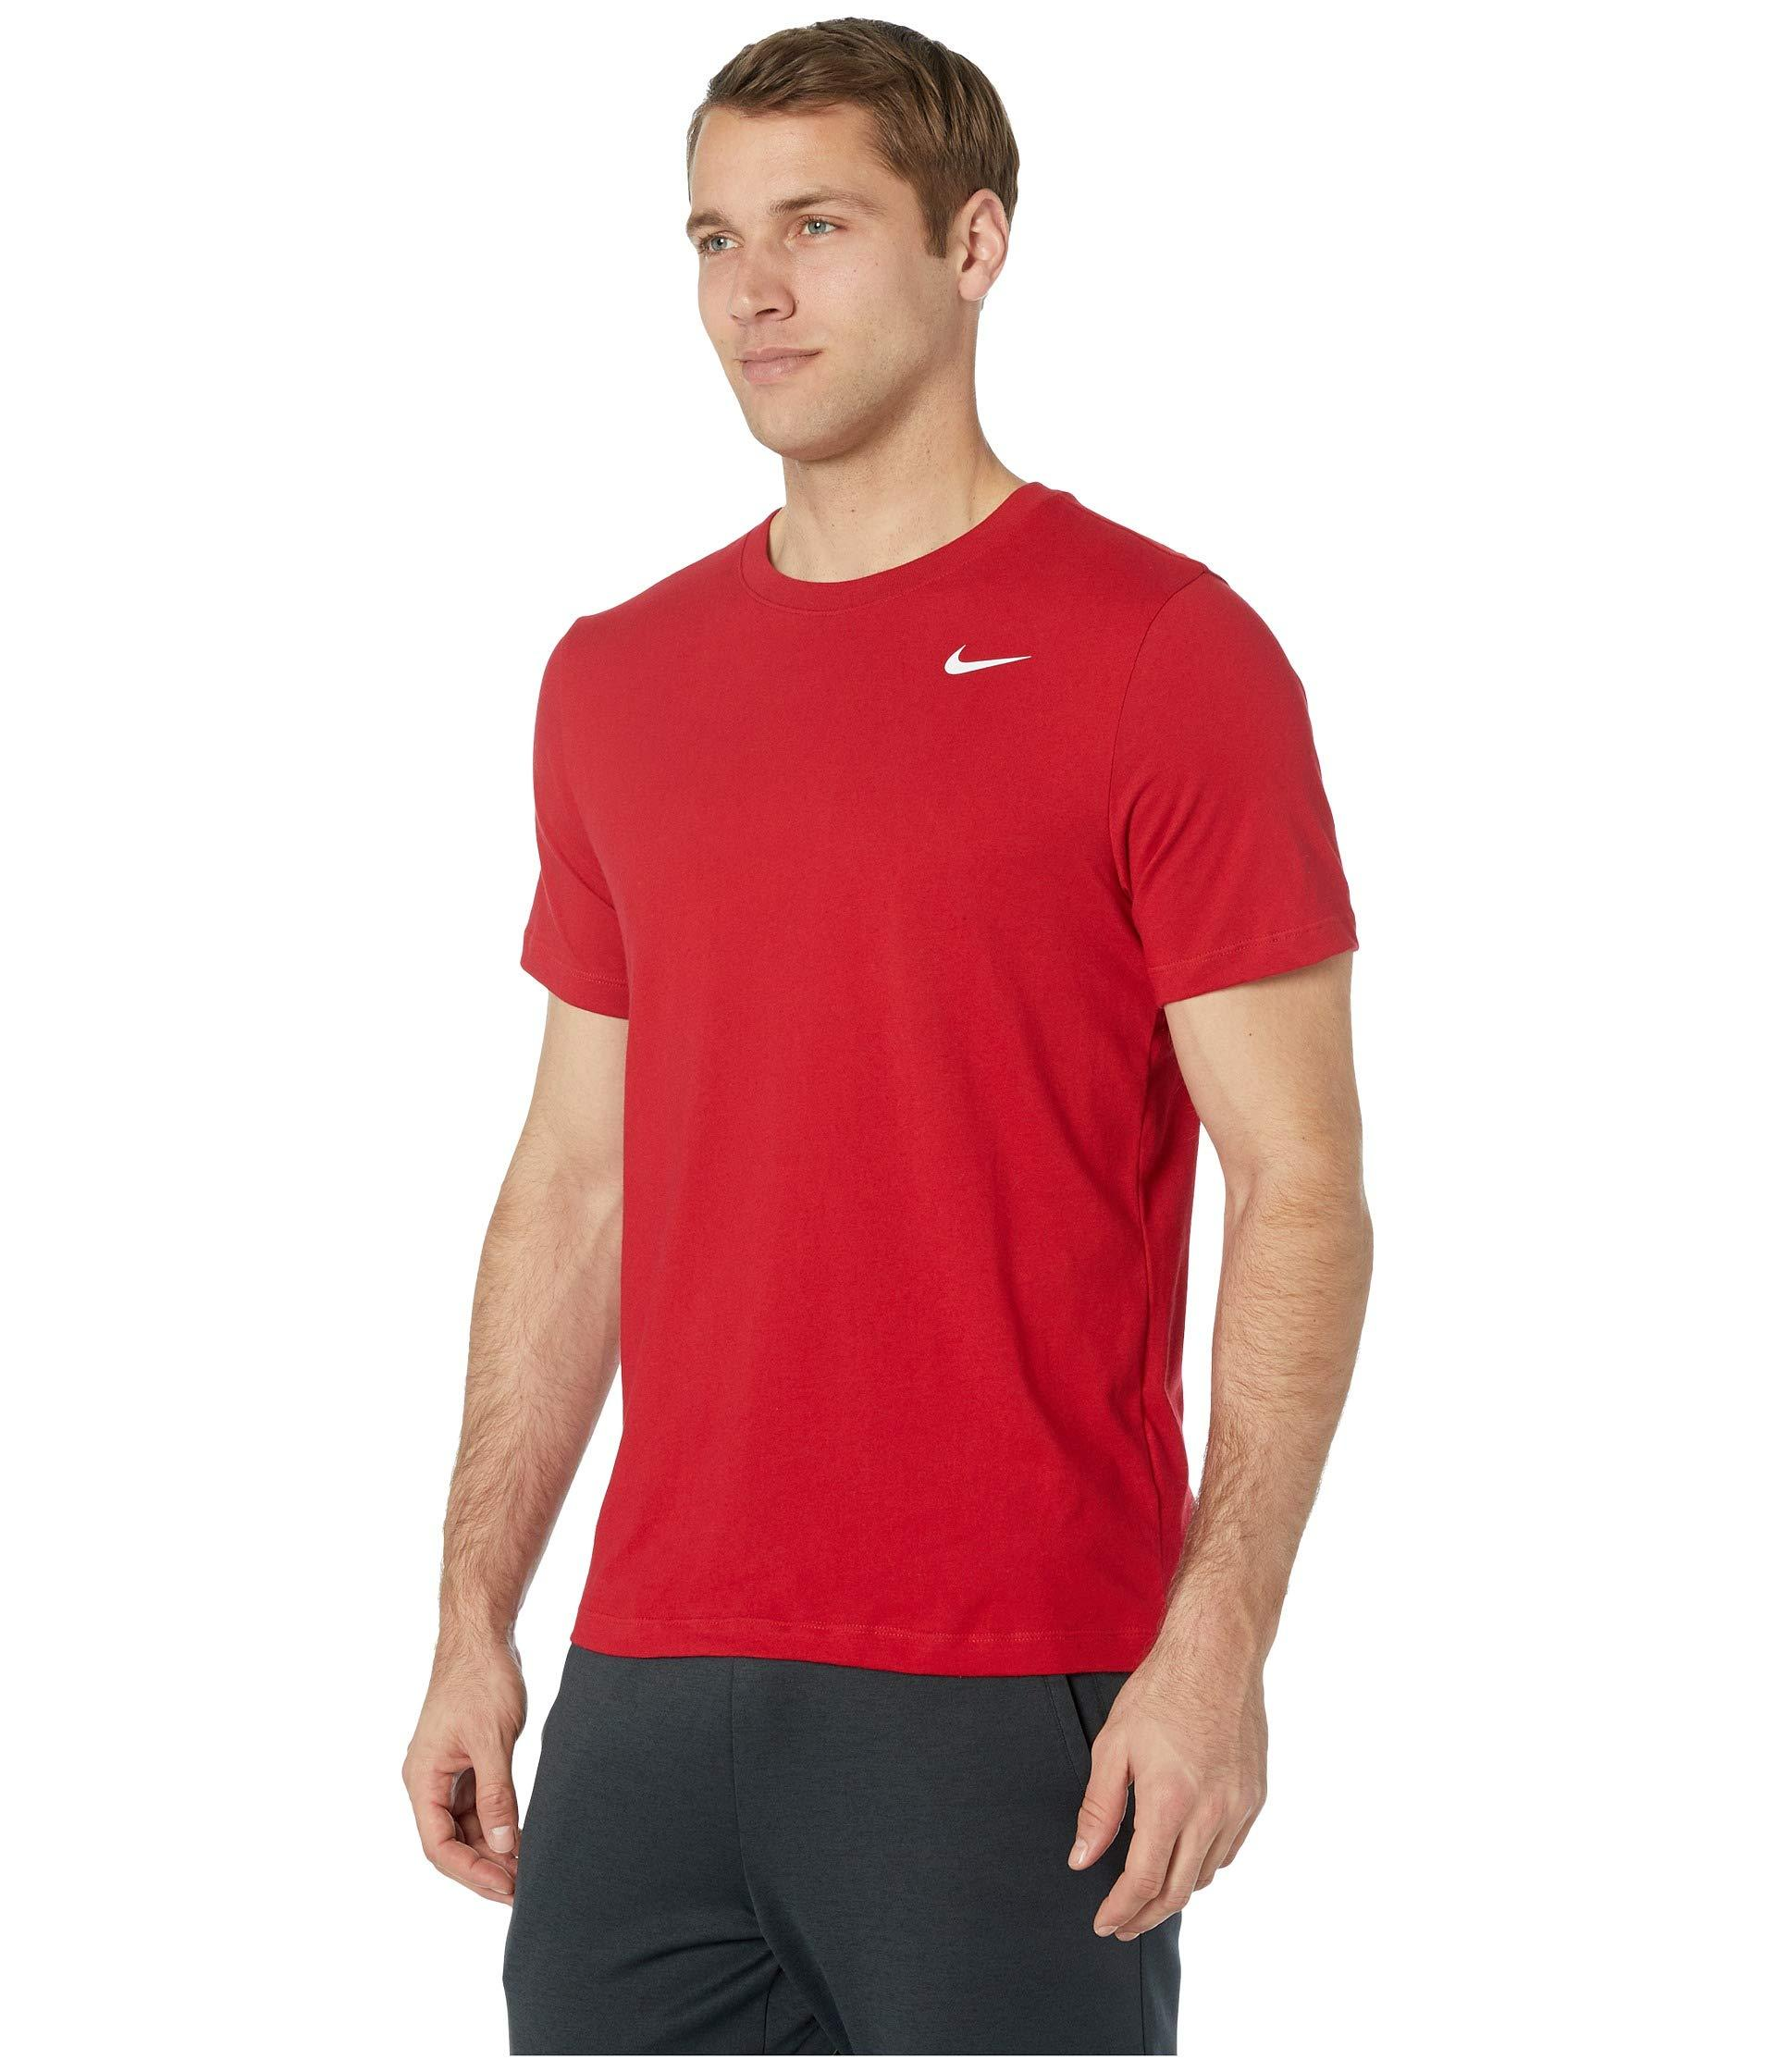 e9bf79895924 Lyst - Nike Dry Tee Dri-fittm Cotton Crew Solid (black white) Men s T Shirt  in Red for Men